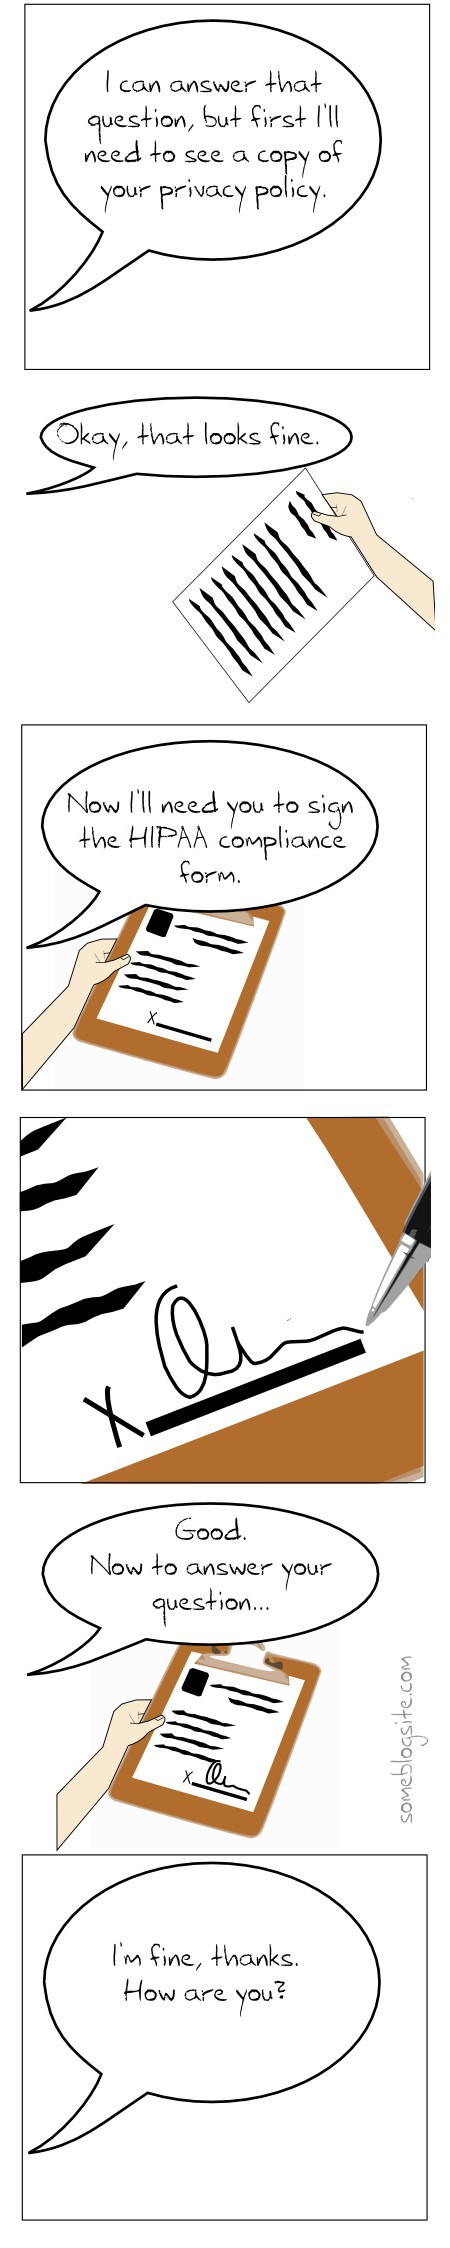 comic about having to sign a HIPAA form just to answer the question 'How are you?'